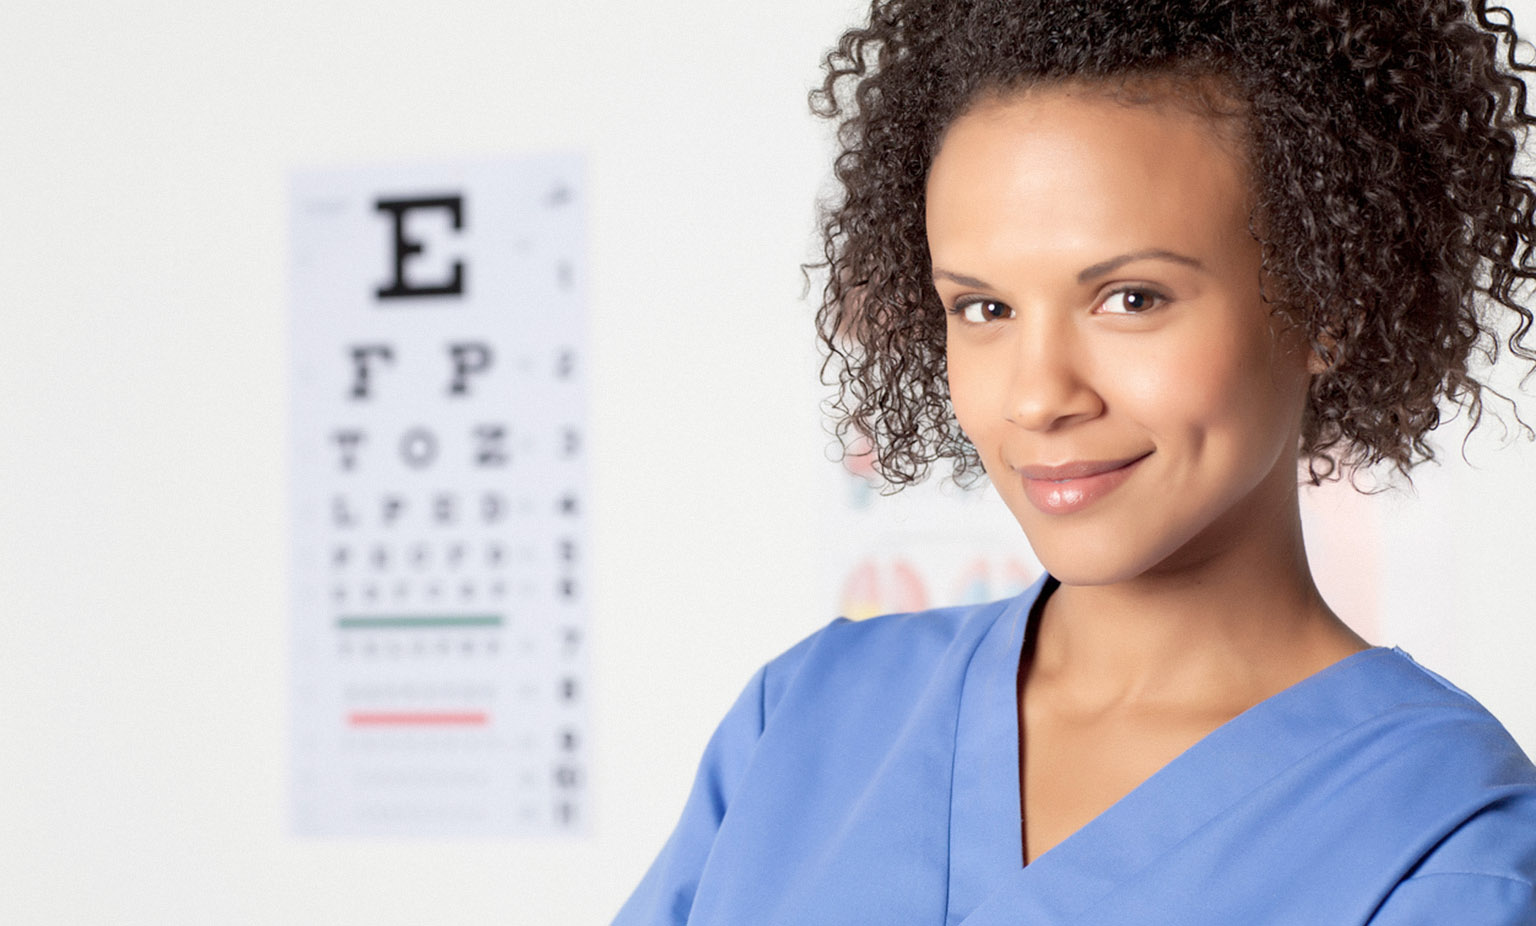 eye exam near me - eye exam East Orange NJ - optometrist near me - ophthalmologist East Orange NJ - Central Parkway Eye Care - eye doctor near me - eye doctor East Orange NJ - ophthalmologist near me